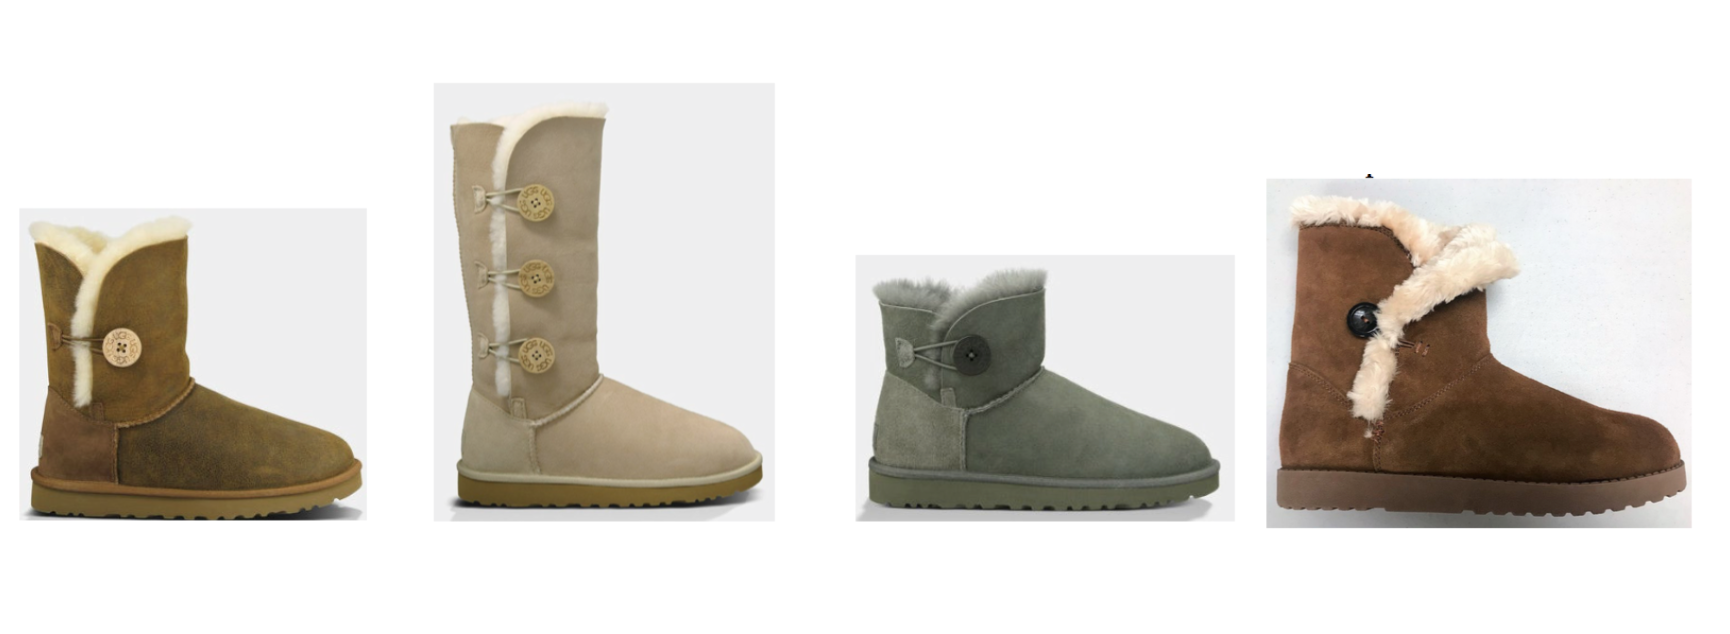 UGG's Bailey Button boots (left) & Target/Iconix's boot (far right)